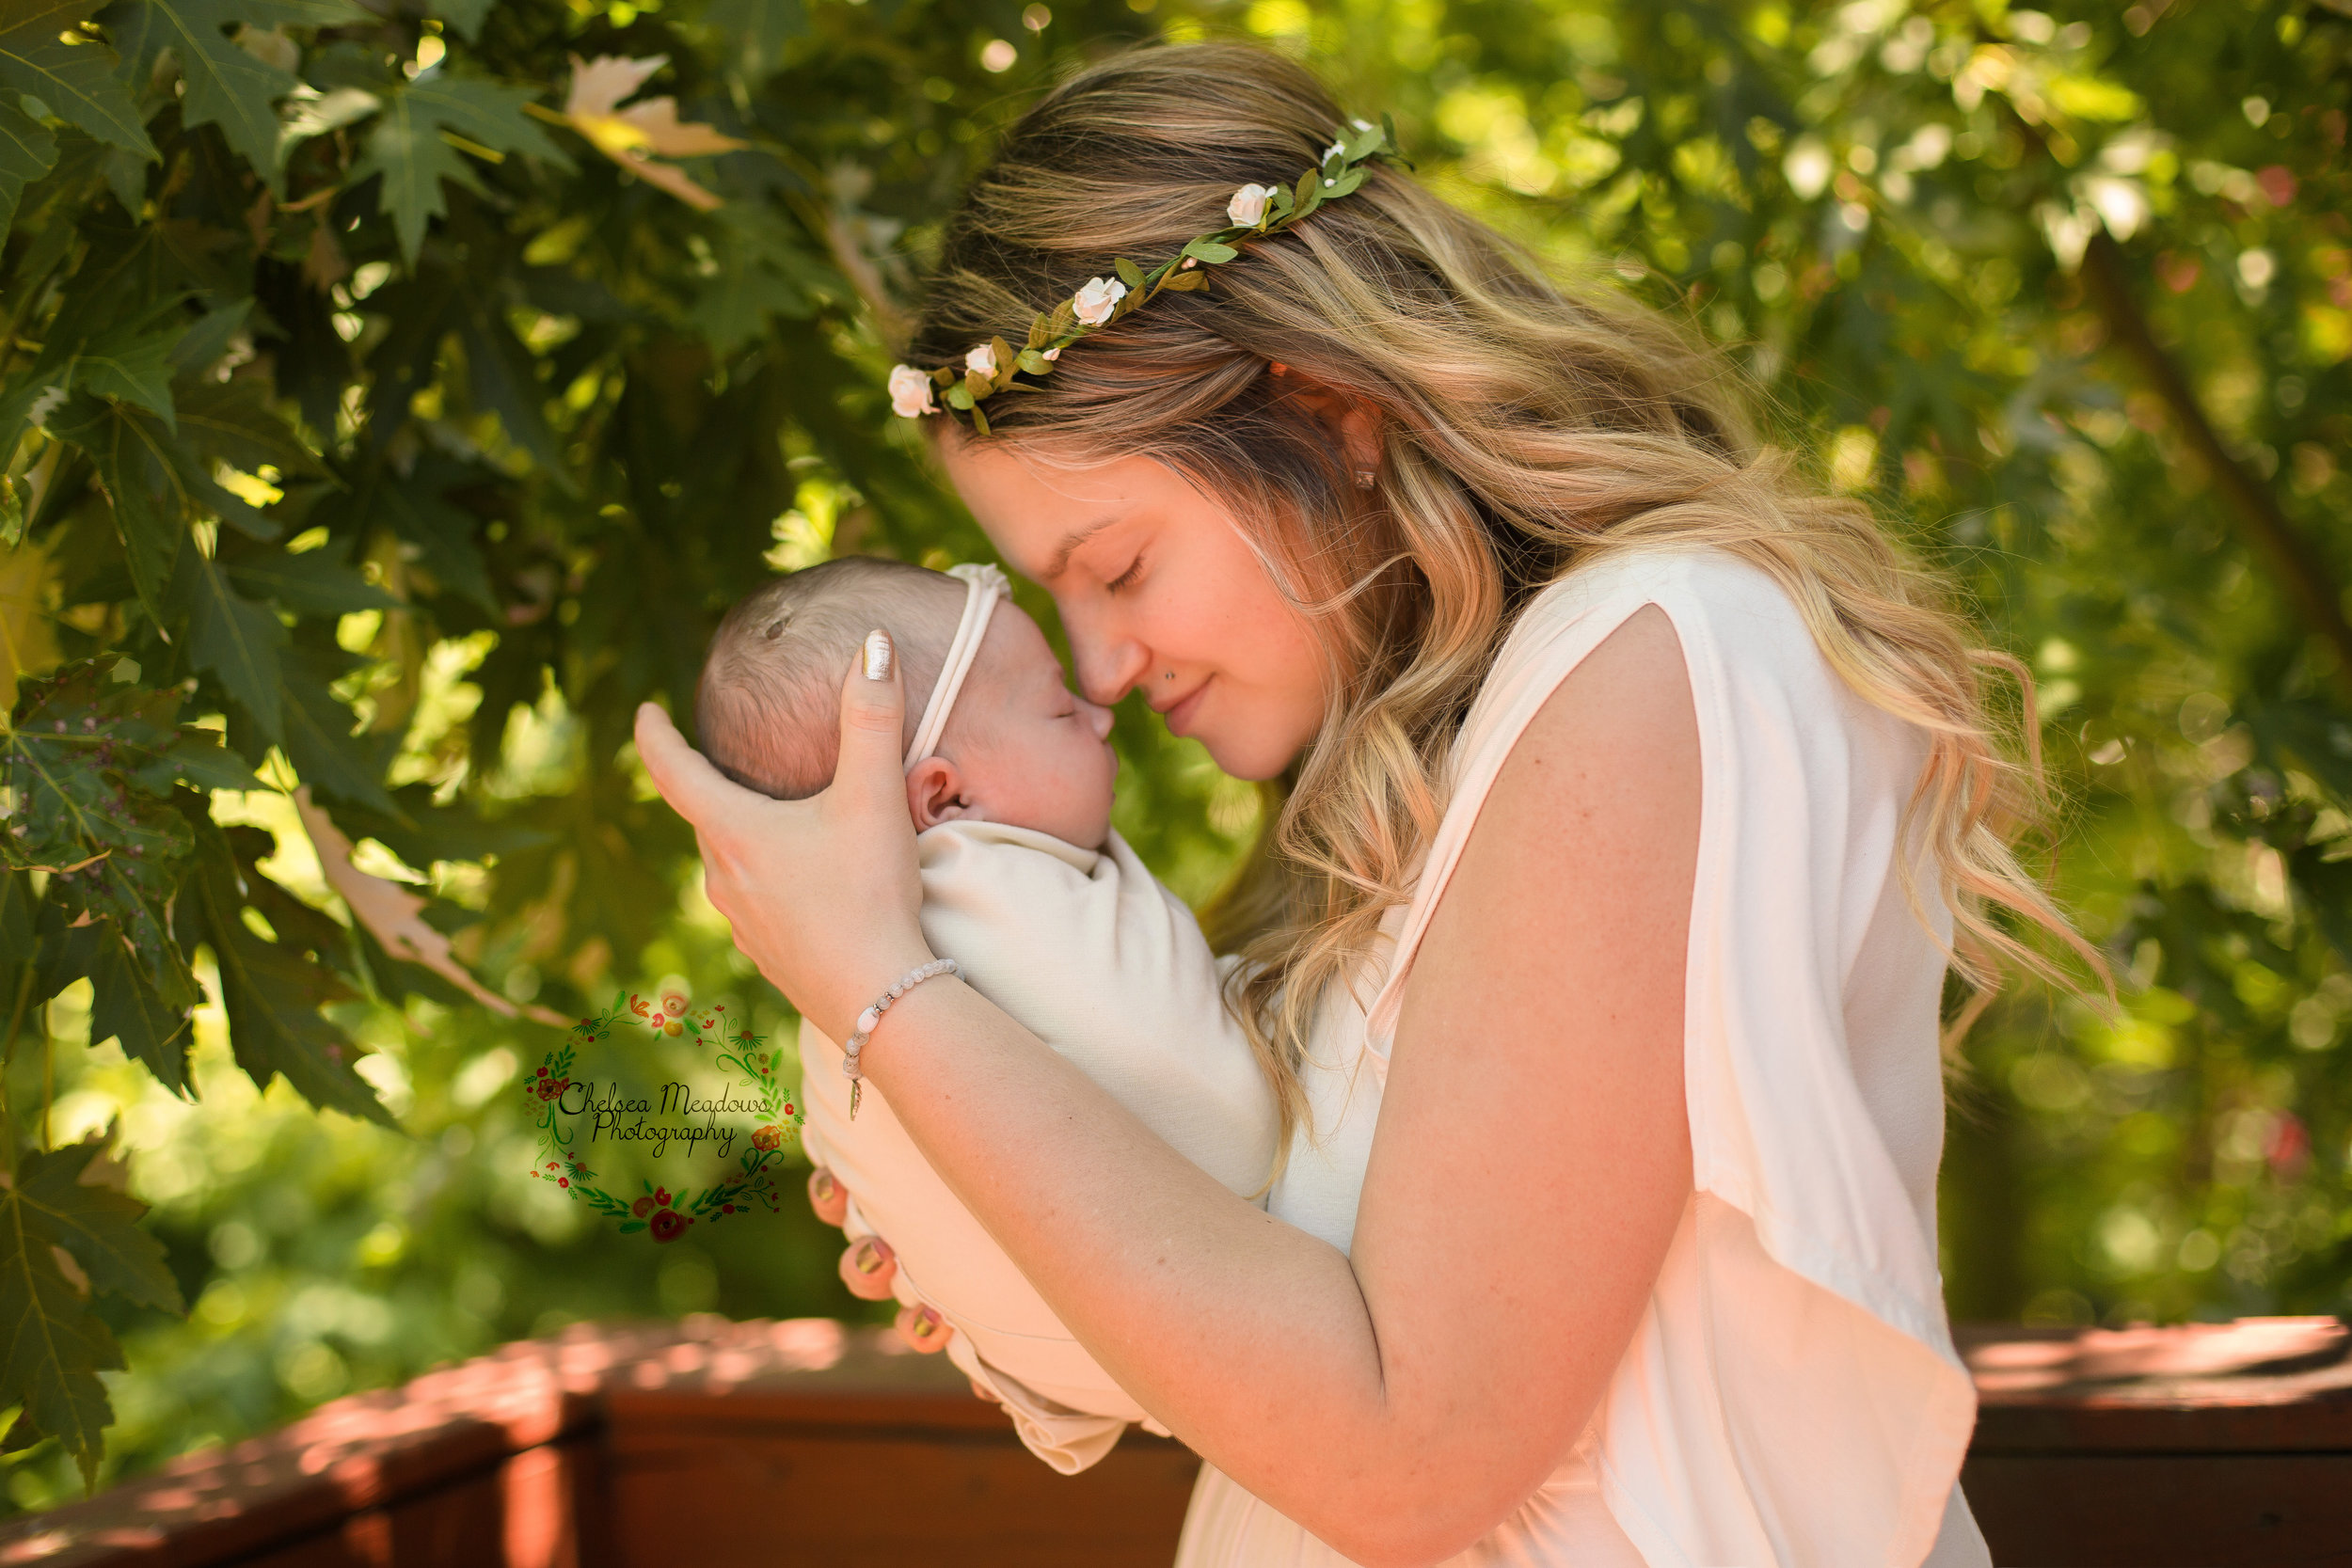 Ella Newborn Photos - Nashville Newborn Photographer - Chelsea Meadows Photography (81).jpg